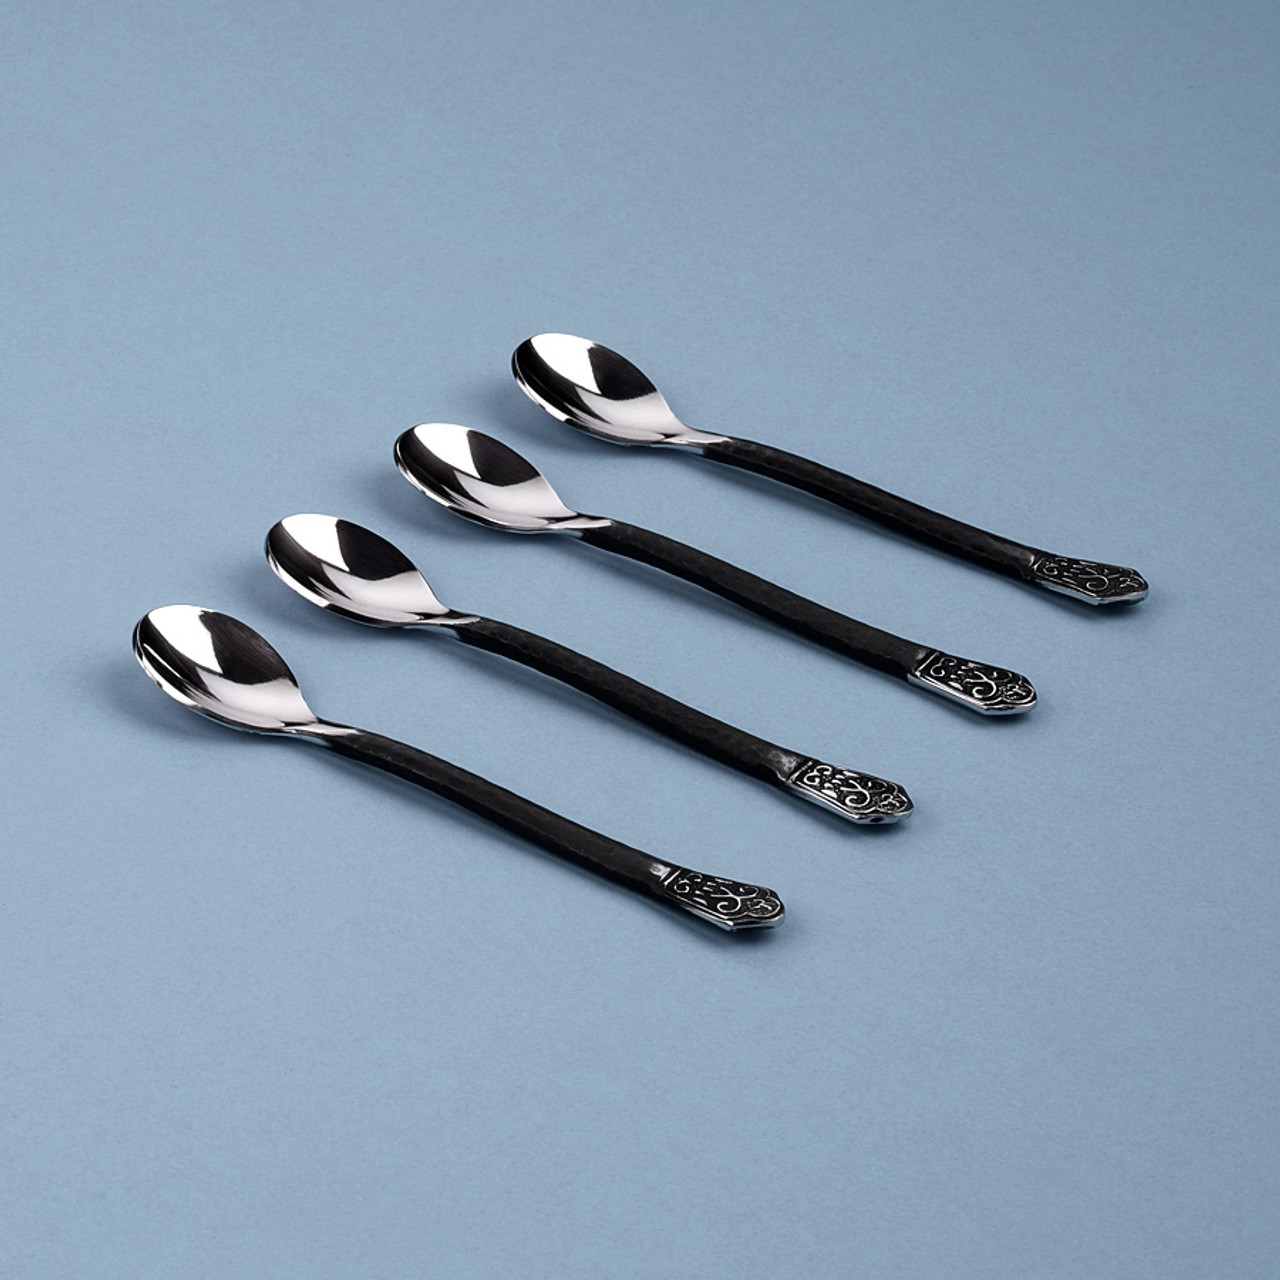 Avalon - 4 piece minispoon set